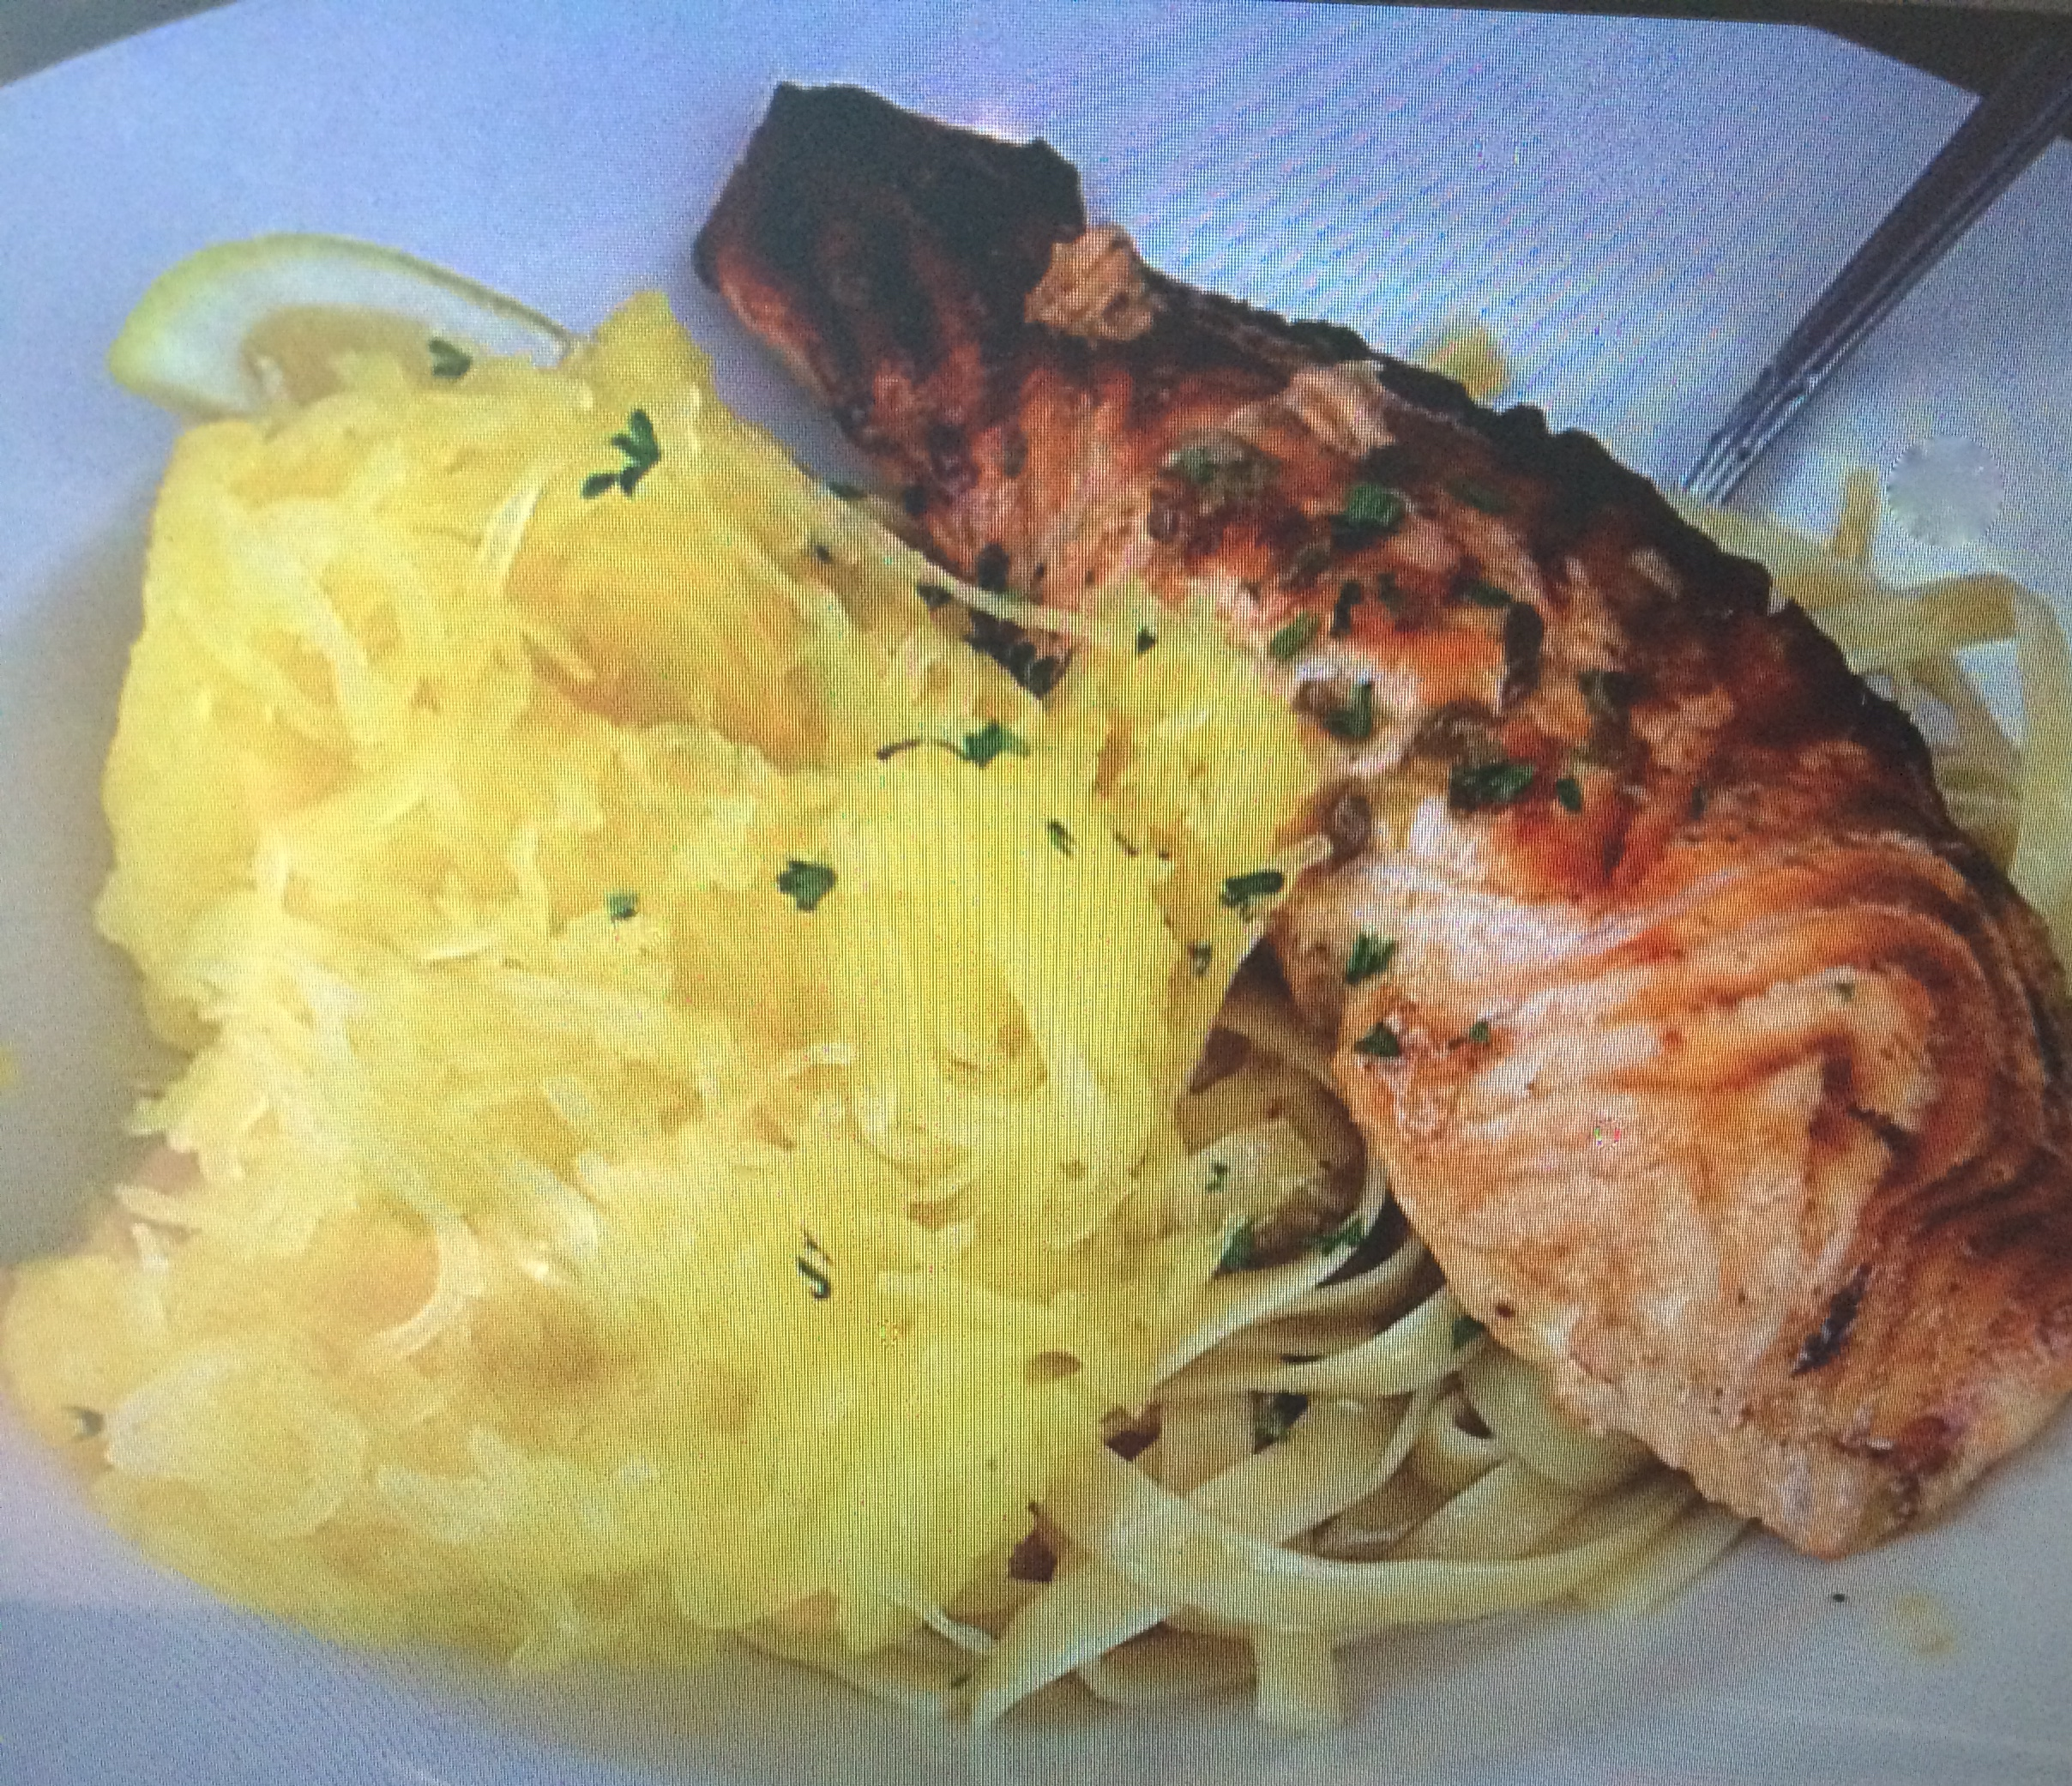 Cucina Tagliani Menu With Prices Italian Salmon Battle Scottsdale La Torretta Vs Glendale Cucina